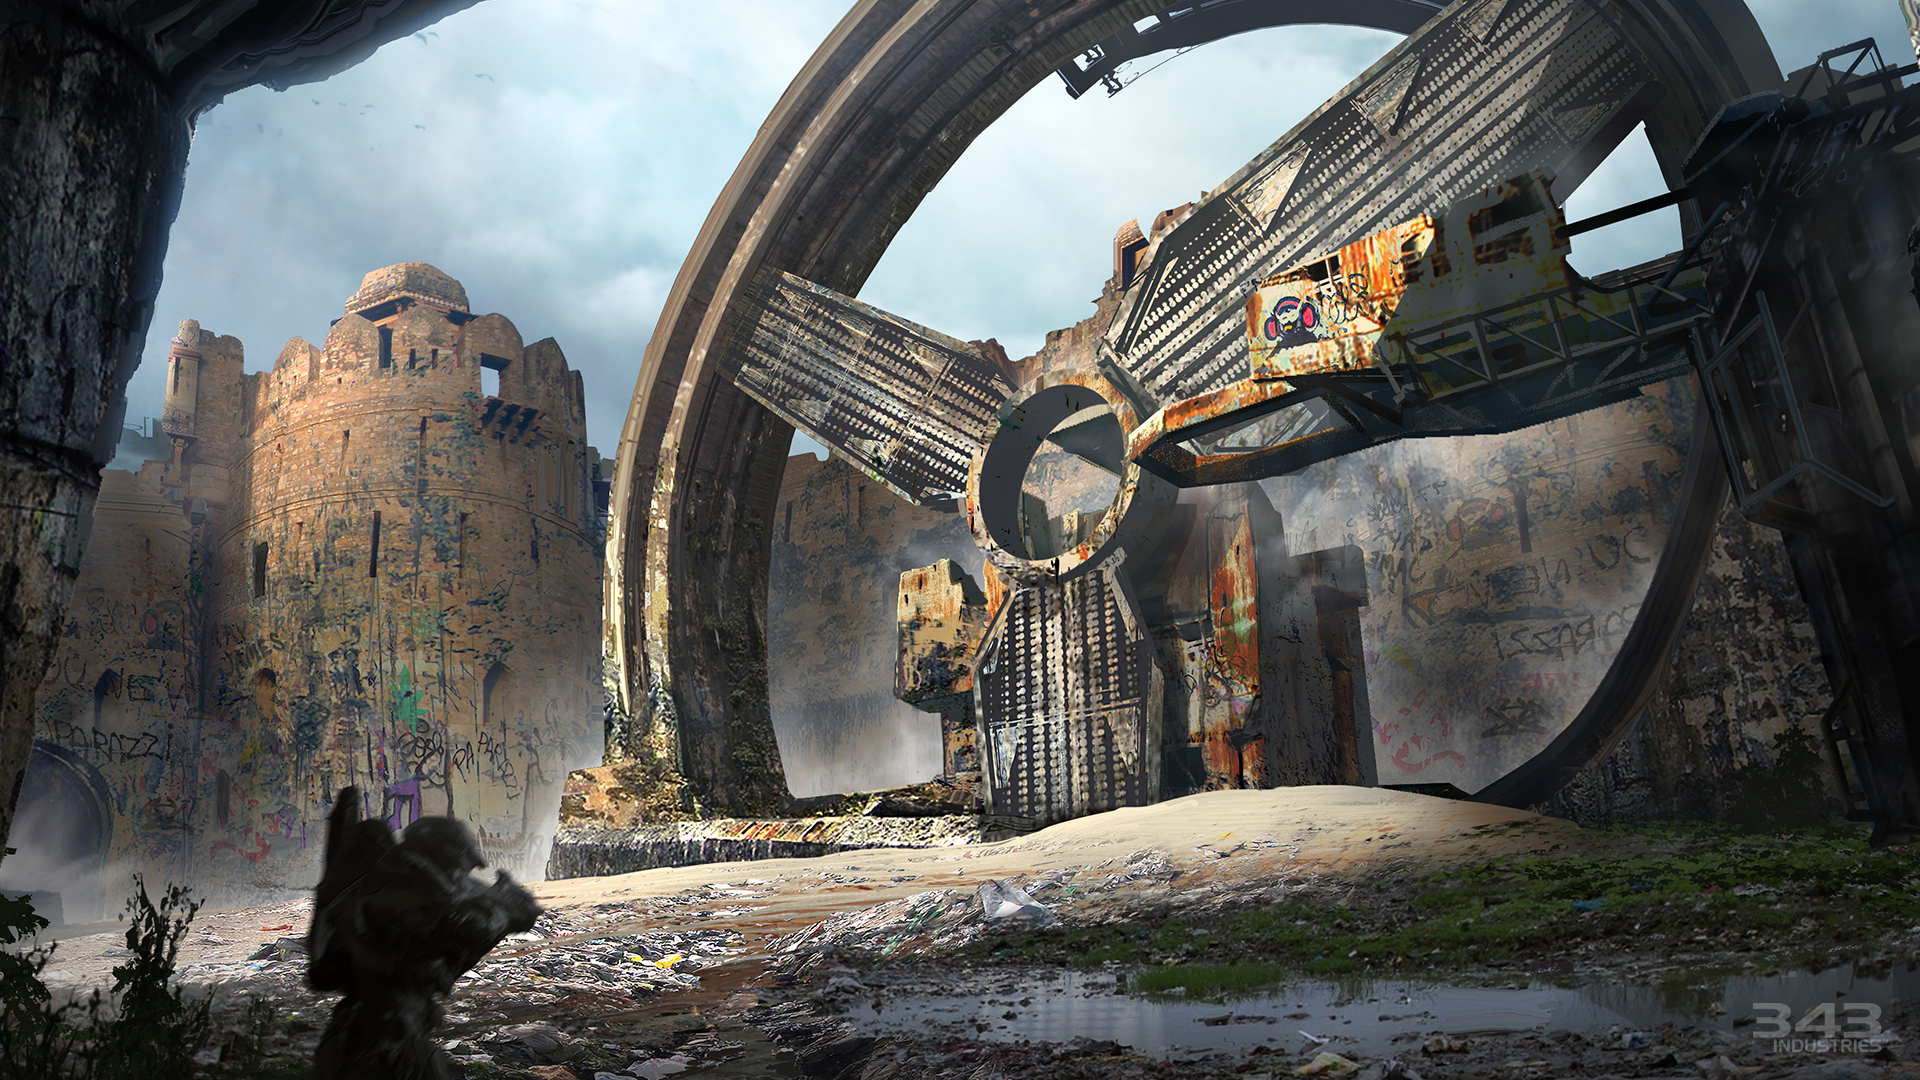 1406315113-sdcc-2014-halo-2-anniversary-zanzibar-concept-art-wind-wheel